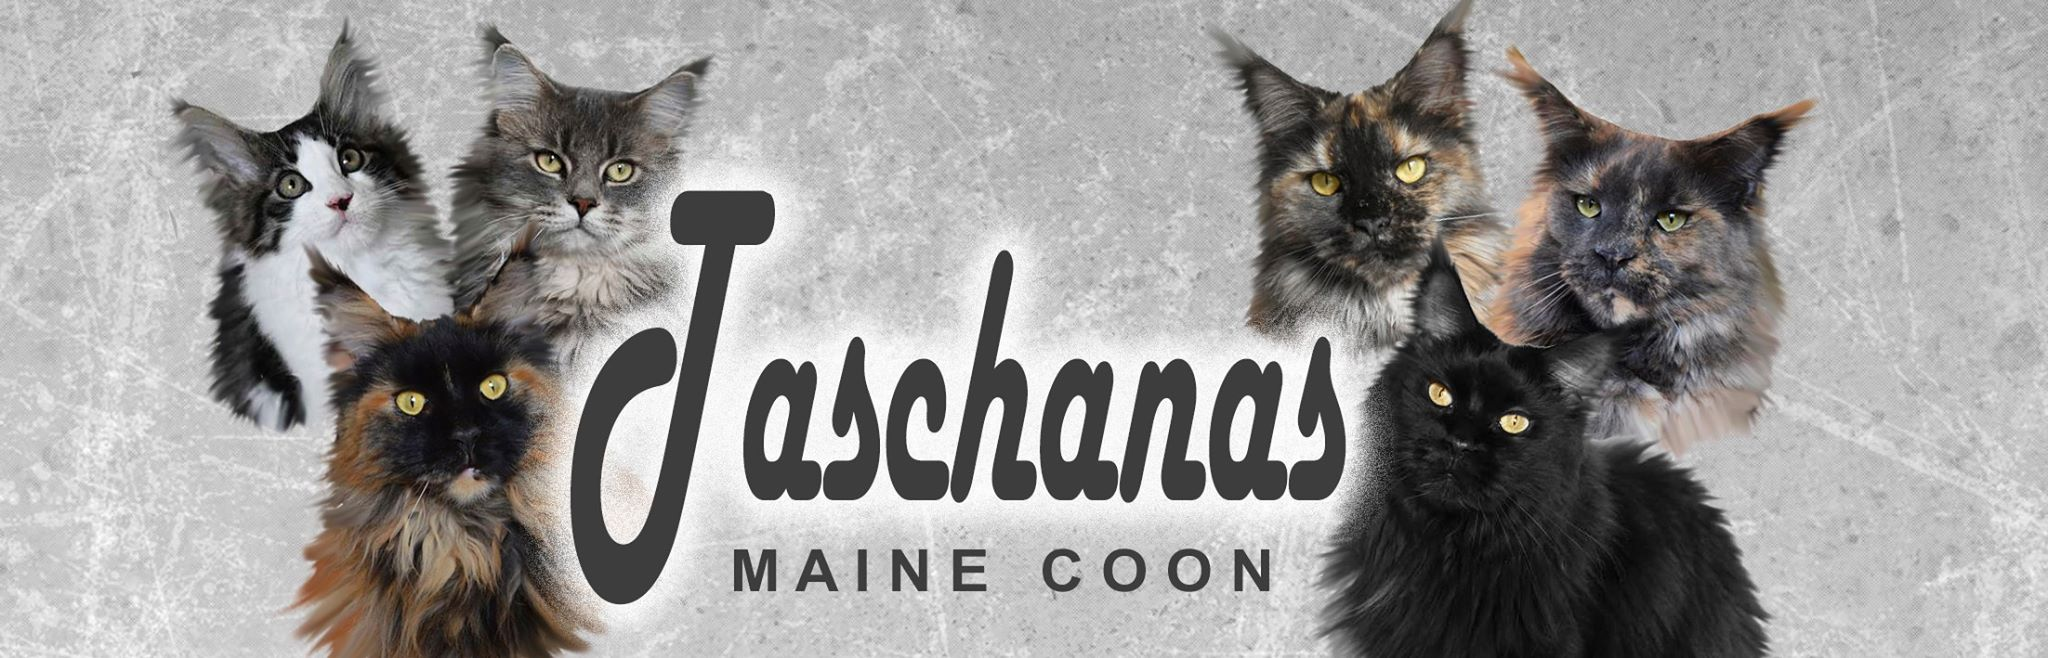 Taschanas Maine Coon